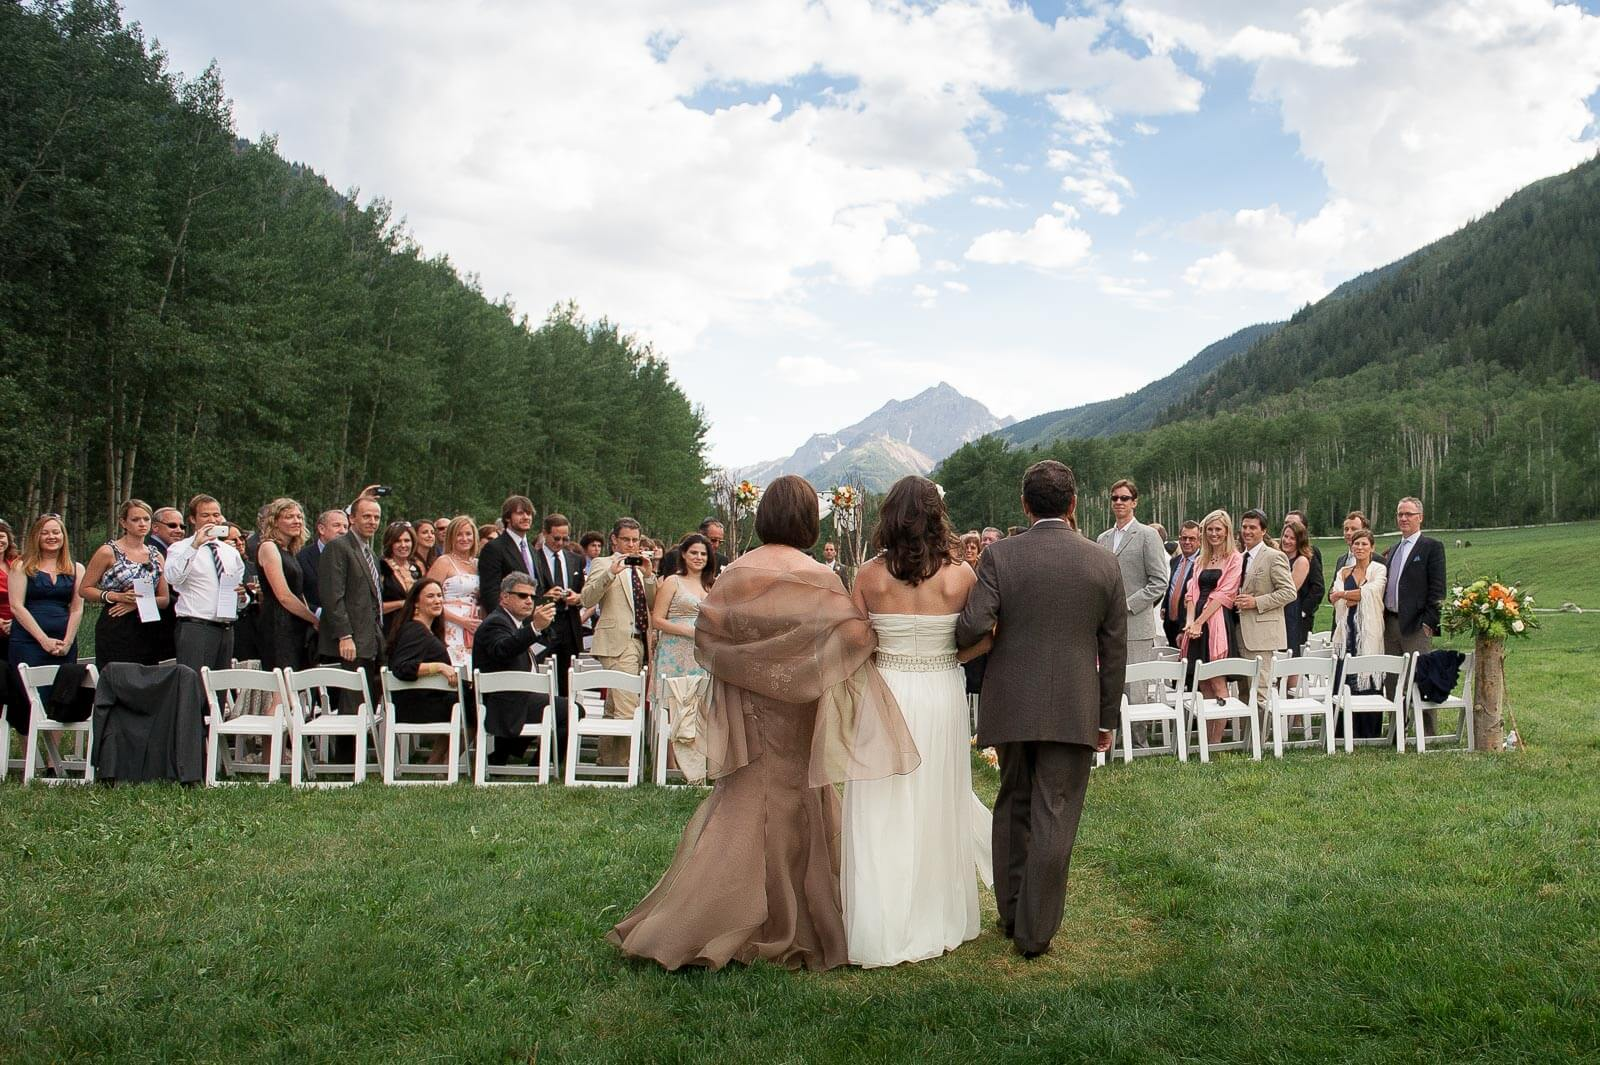 Destination Wedding at T-Lazy-7 Ranch in Aspen